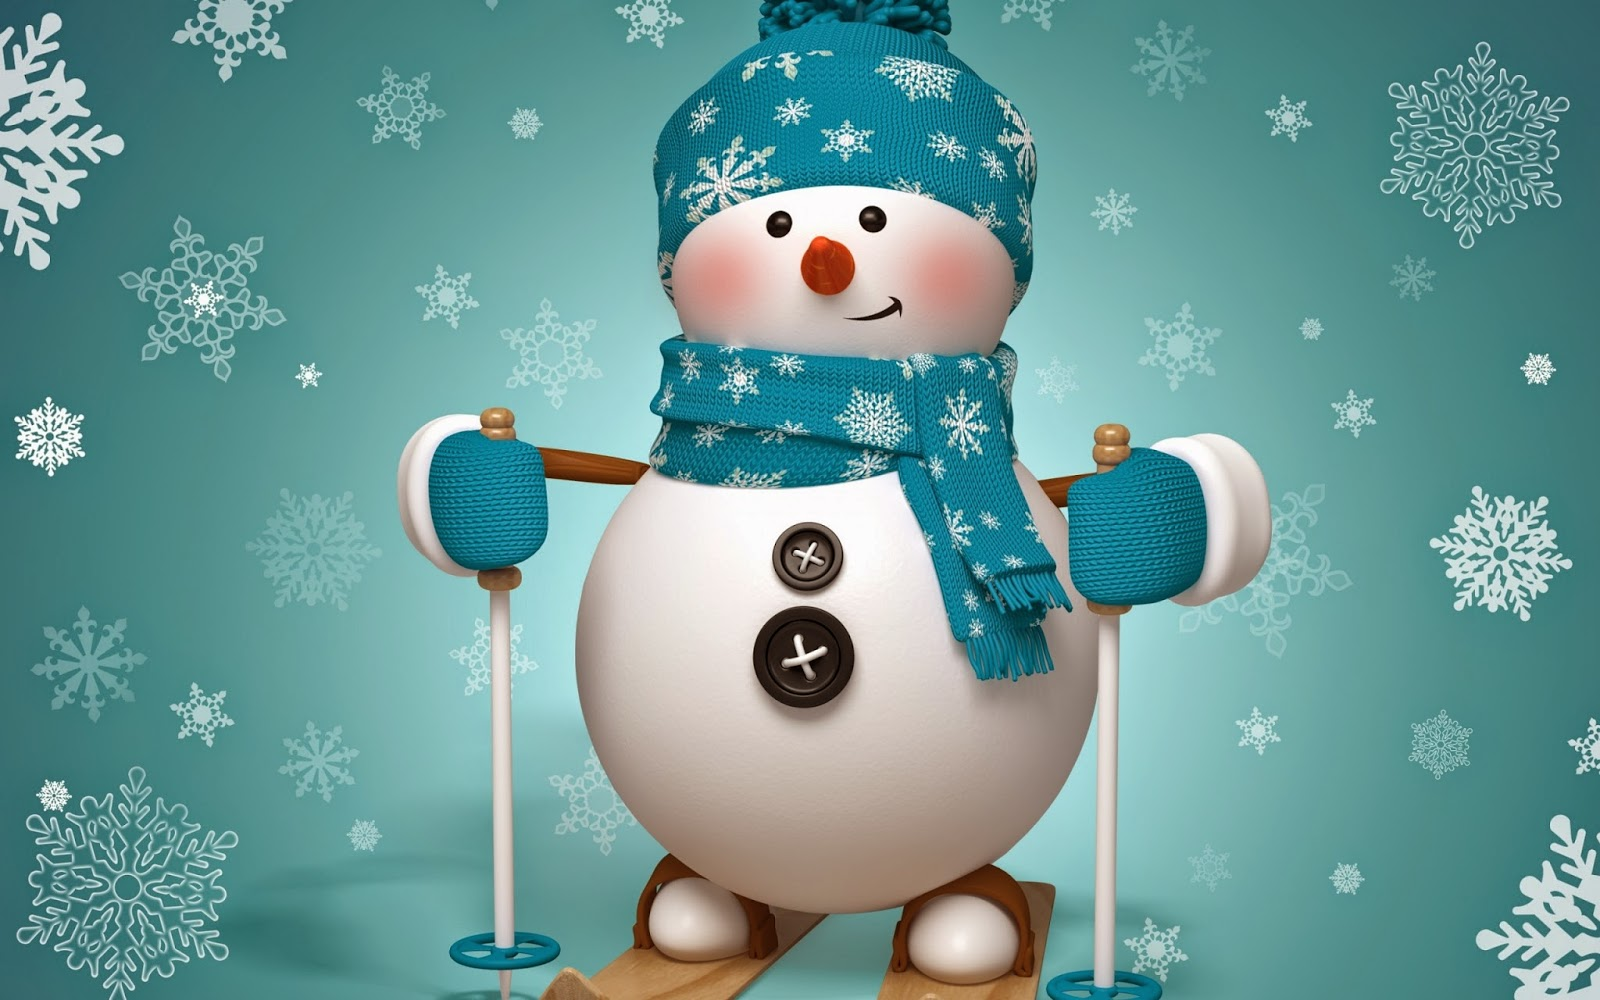 Snowman-ready-to-ice-skate-HD-wallpaper-for-desktop-pc-free-download.jpg